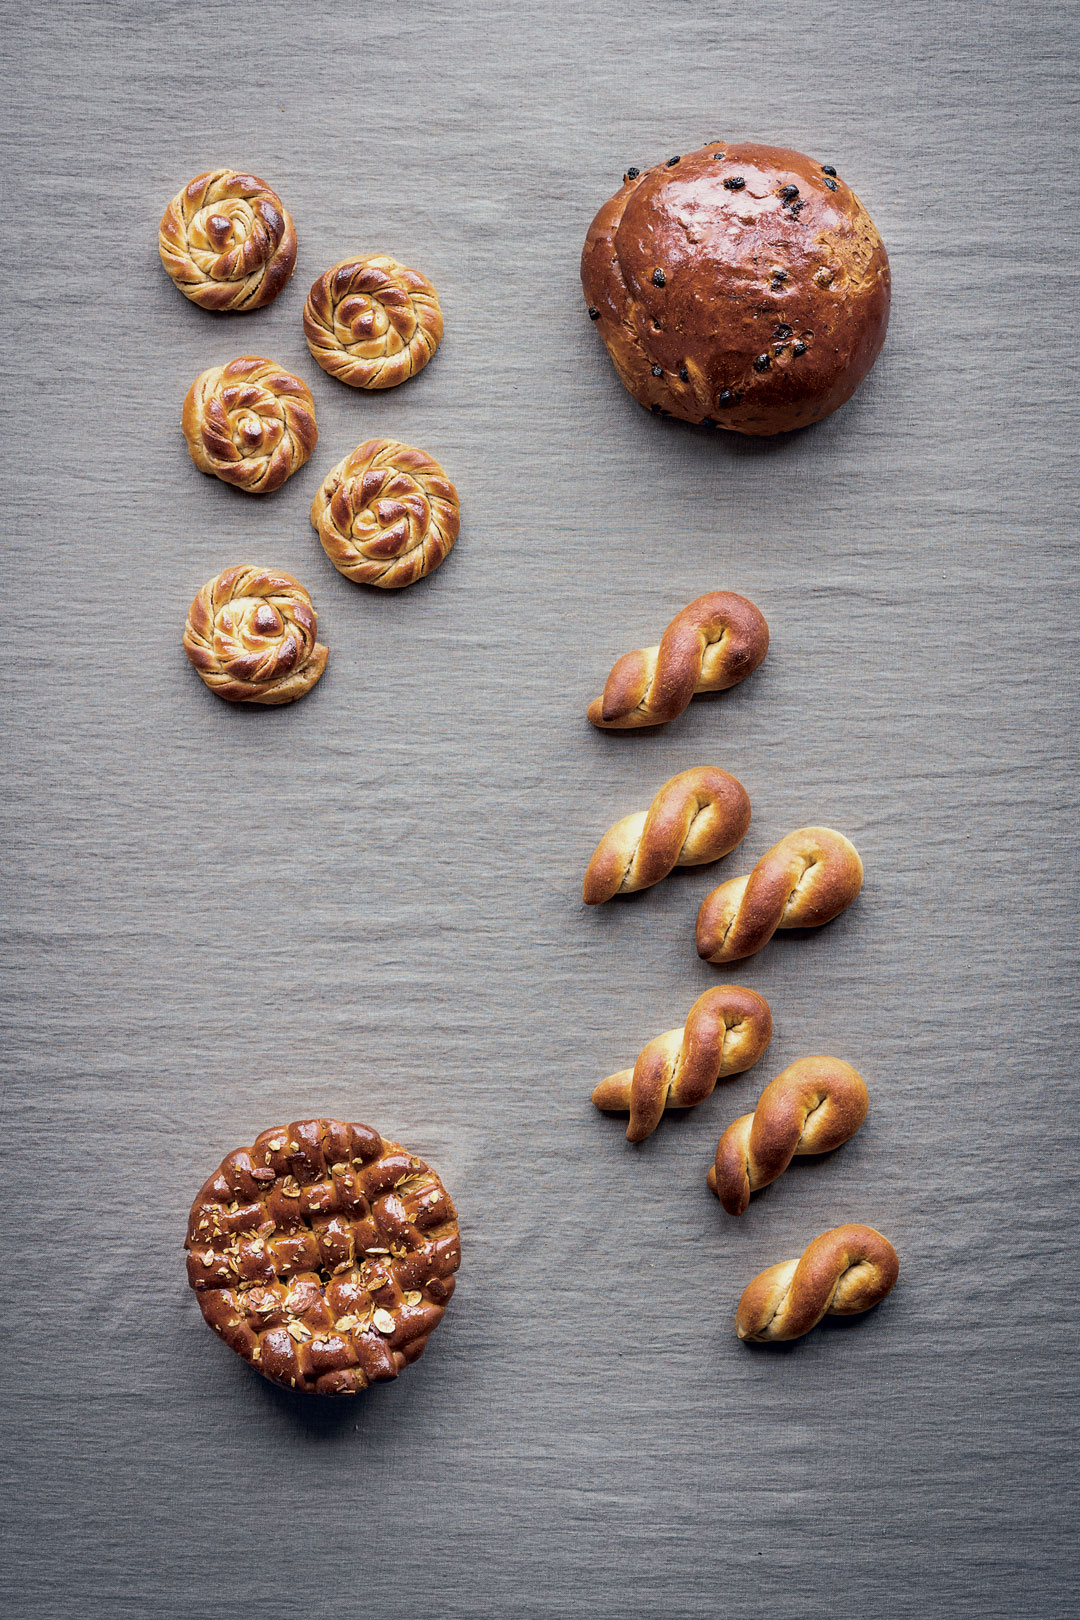 Clockwise from top left: Karlsbader Buns with Almond Paste Filling; Norwegian Christmas Bread; Boys; Danish Almond Tart Leavened with Yeast. All images by Magnus Nilsson from The Nordic Baking Book